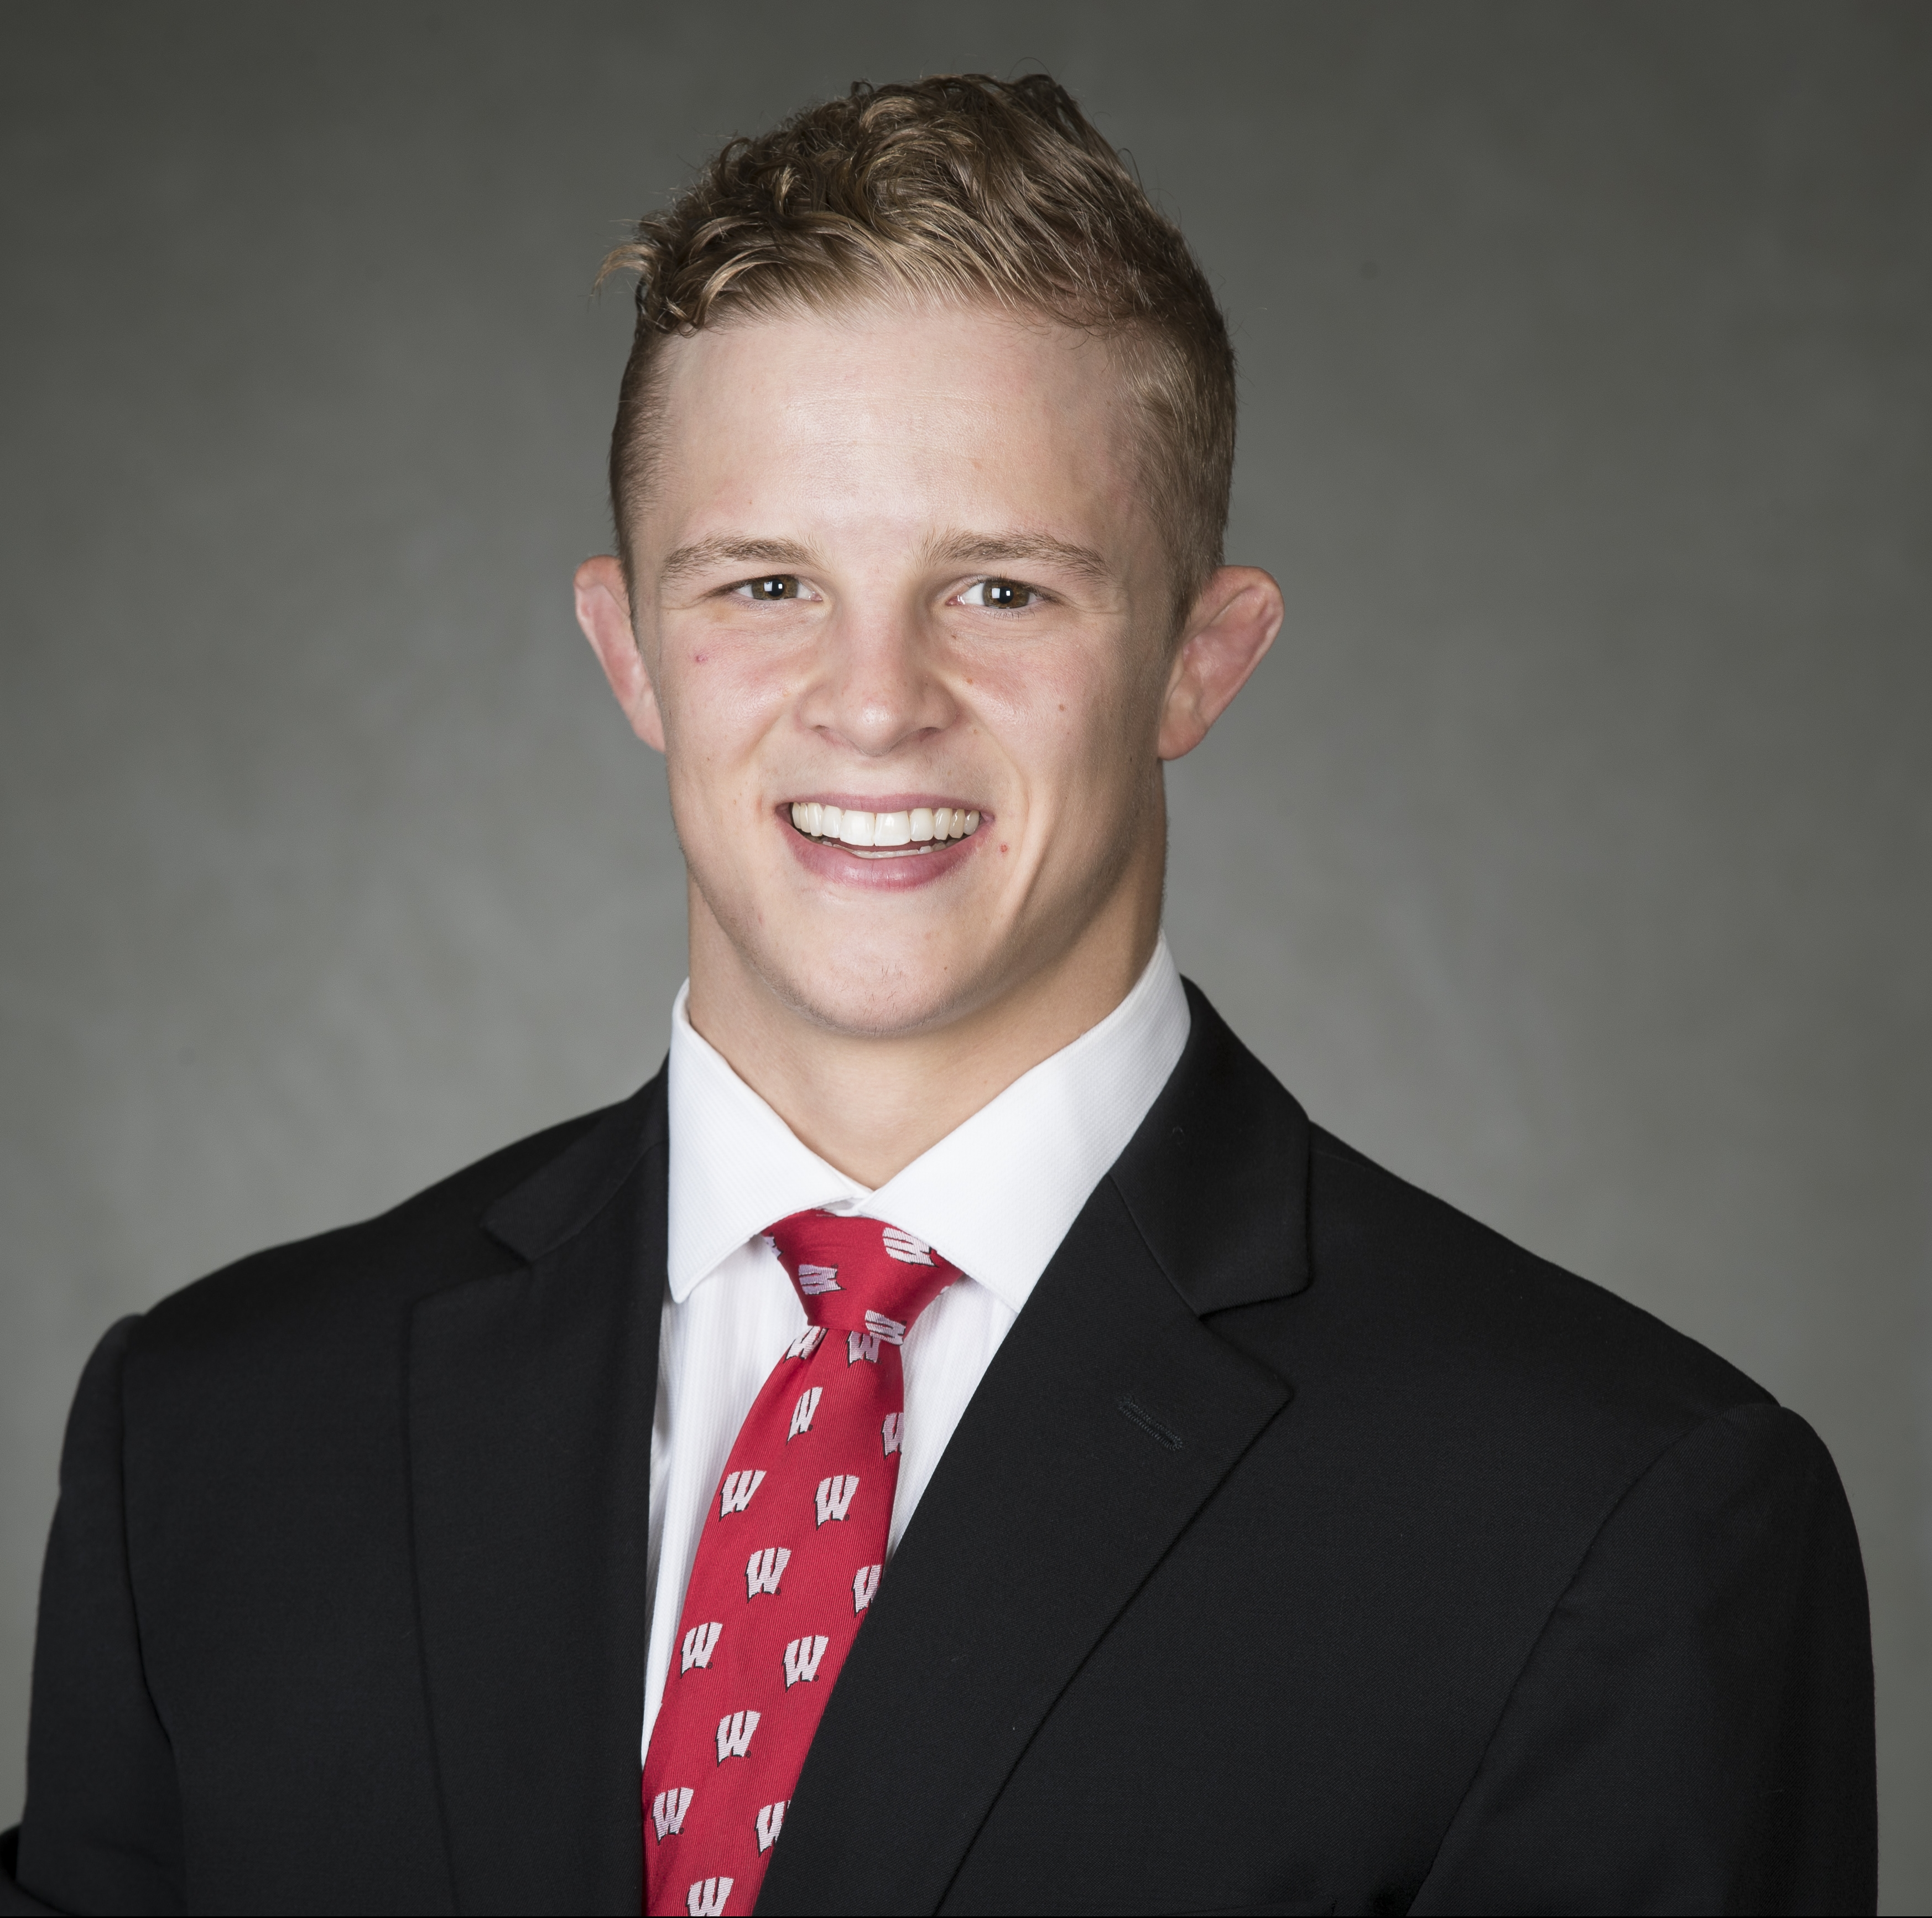 campus community mourns loss of student athlete eli stickley 21